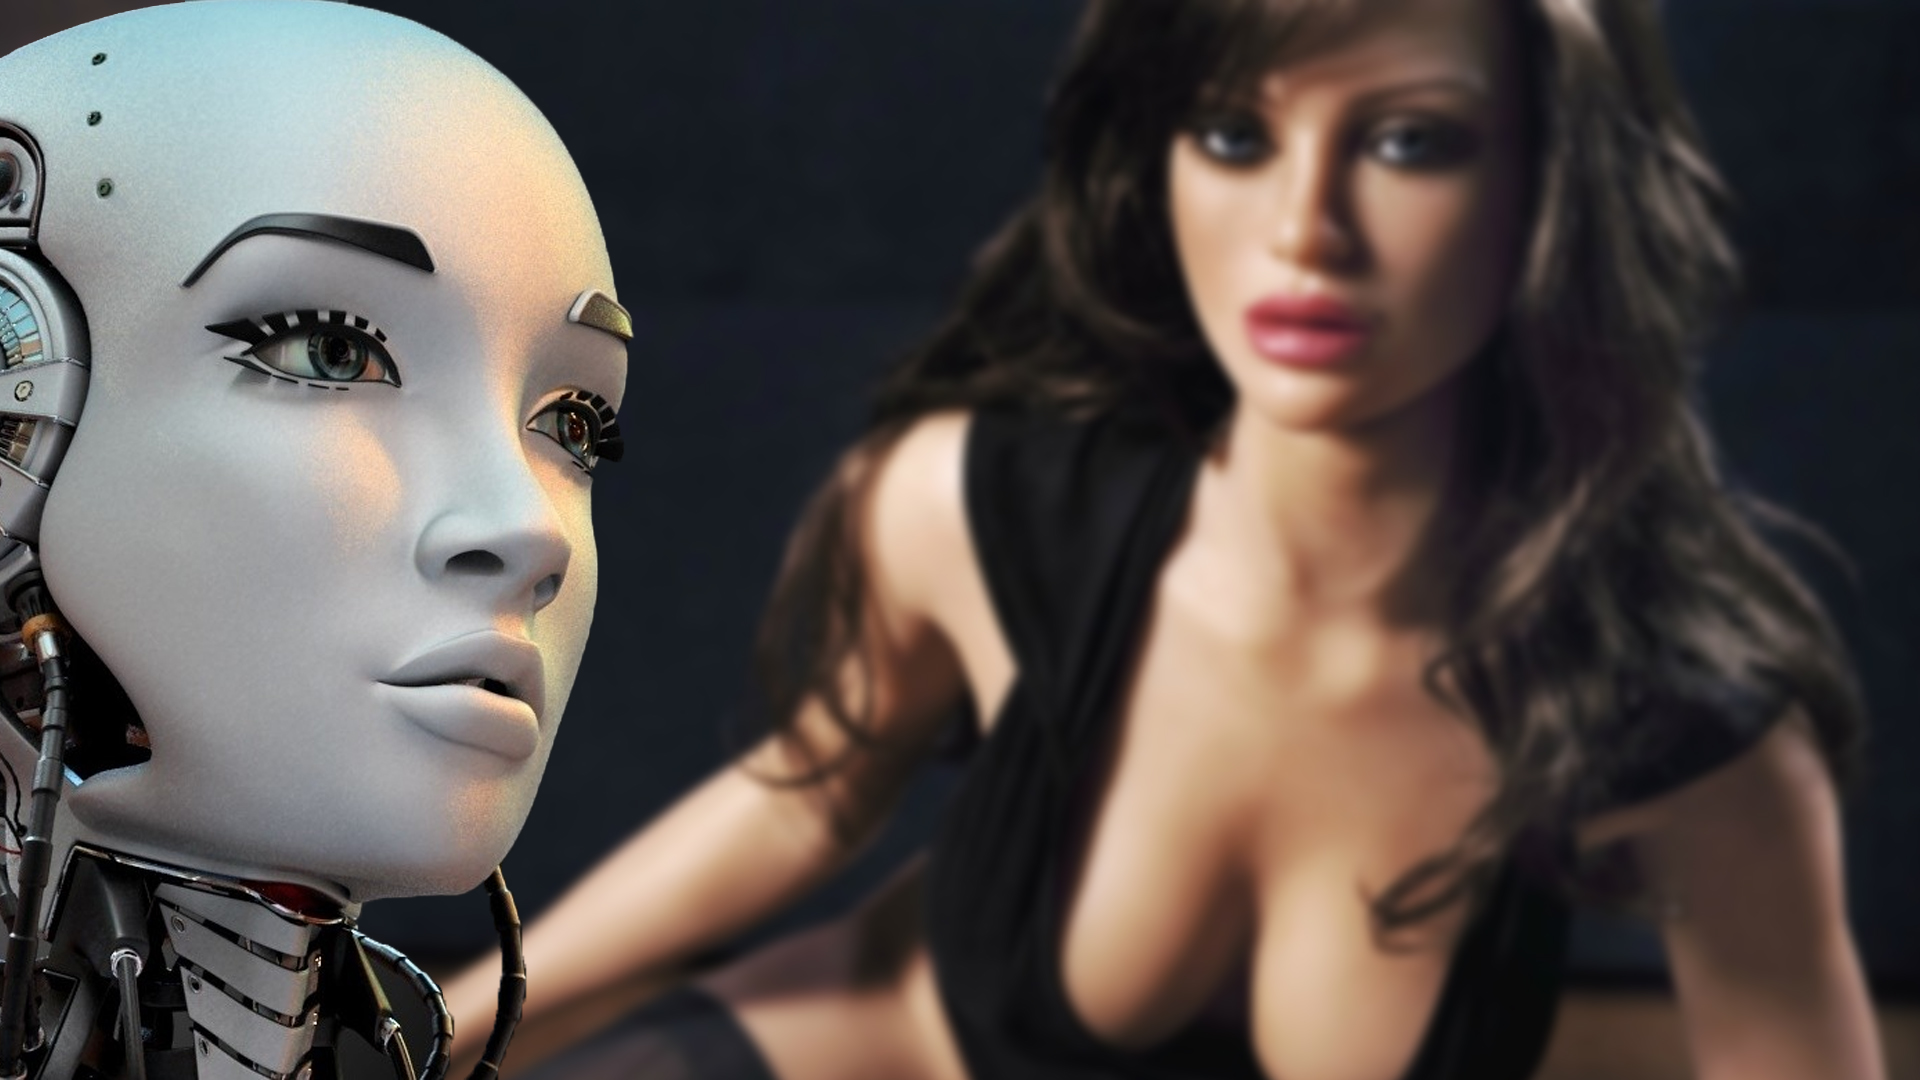 Humans having sex with robots